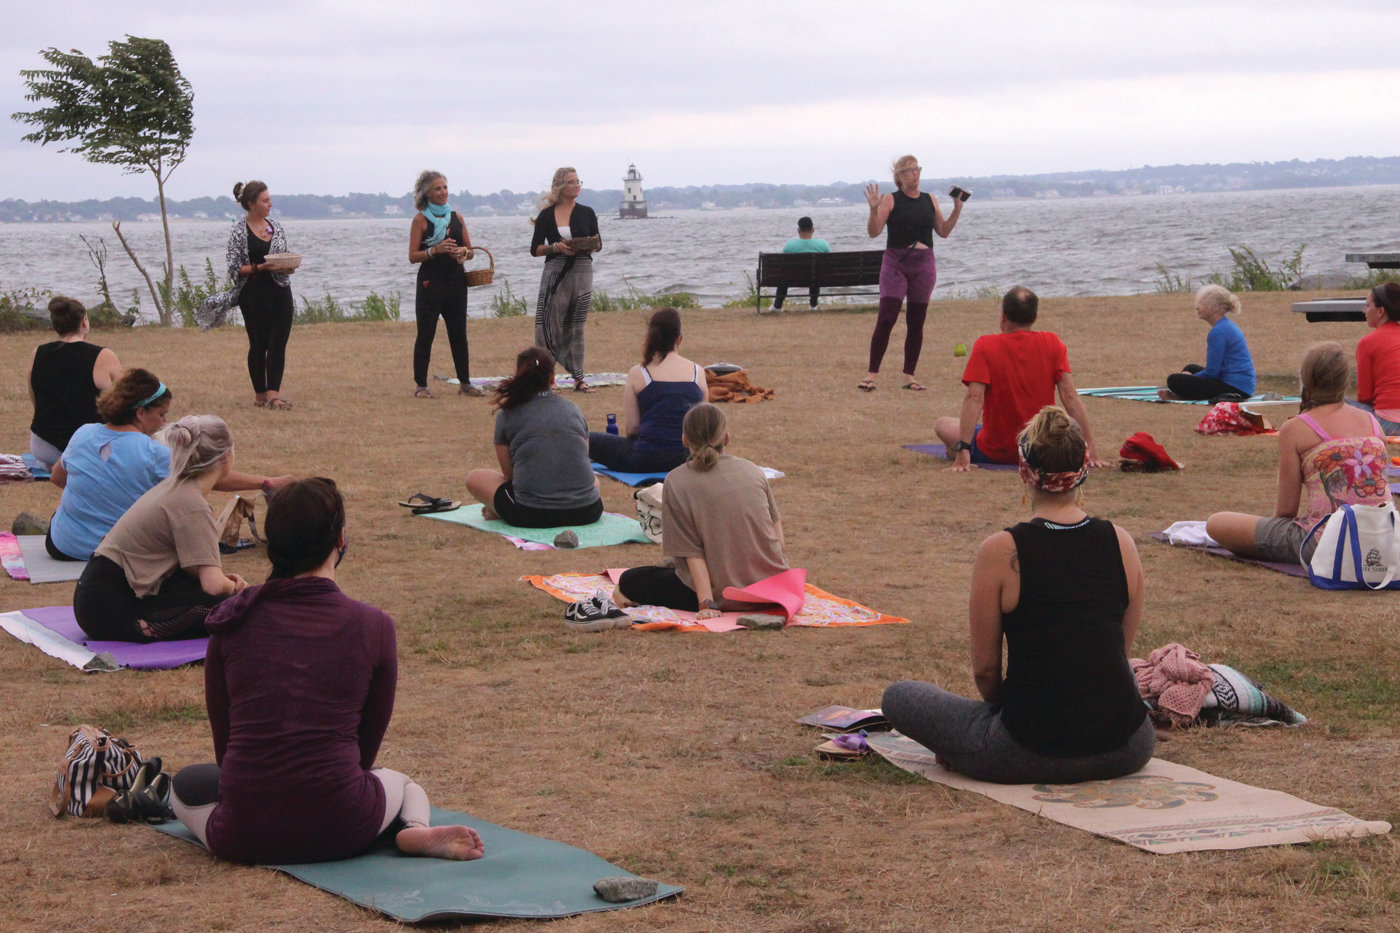 A UNIFYING FORCE: While the moon was obscured and there was a lot of wind and a few rain drops, conditions didn't deter participation at Sunday's Yoga at the Point full moon event. Conimicut resident and board member of the Conimicut Village Association, Lisa Markovich has brought local yoga groups together to promote yoga and the village.